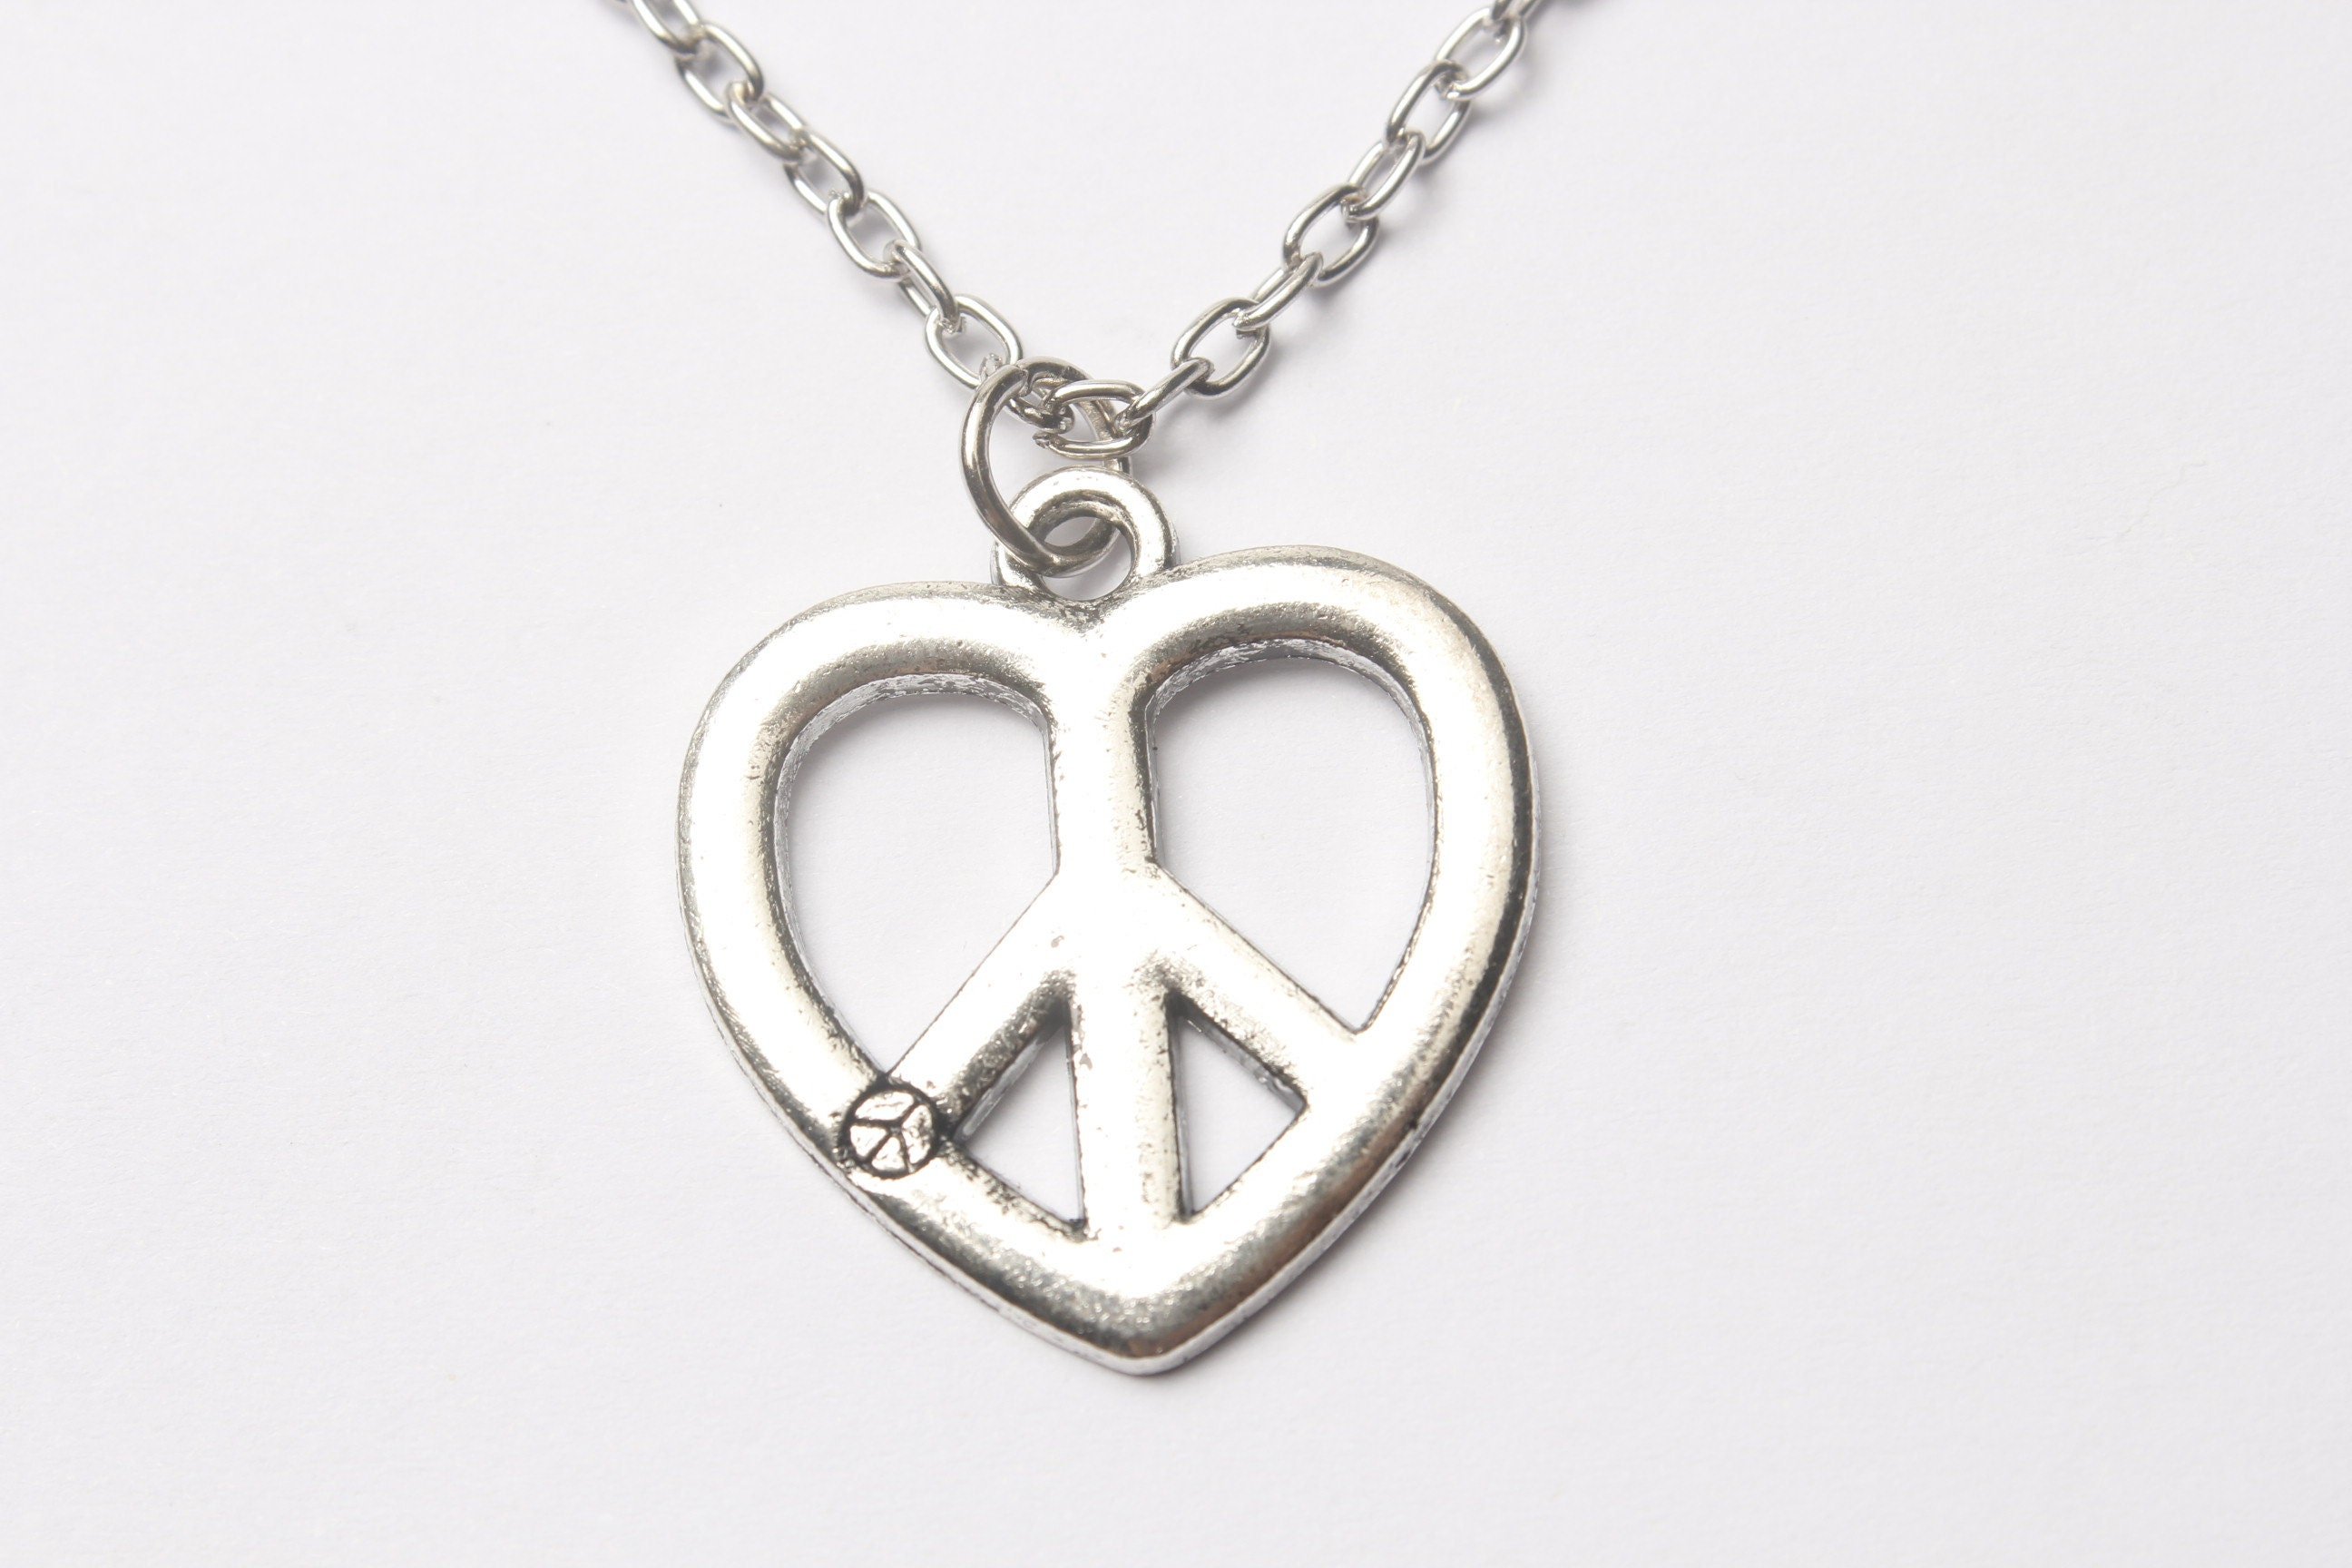 mens peace sign bling c p teqhsfd sterling leather pendant inches silver necklace jewelry